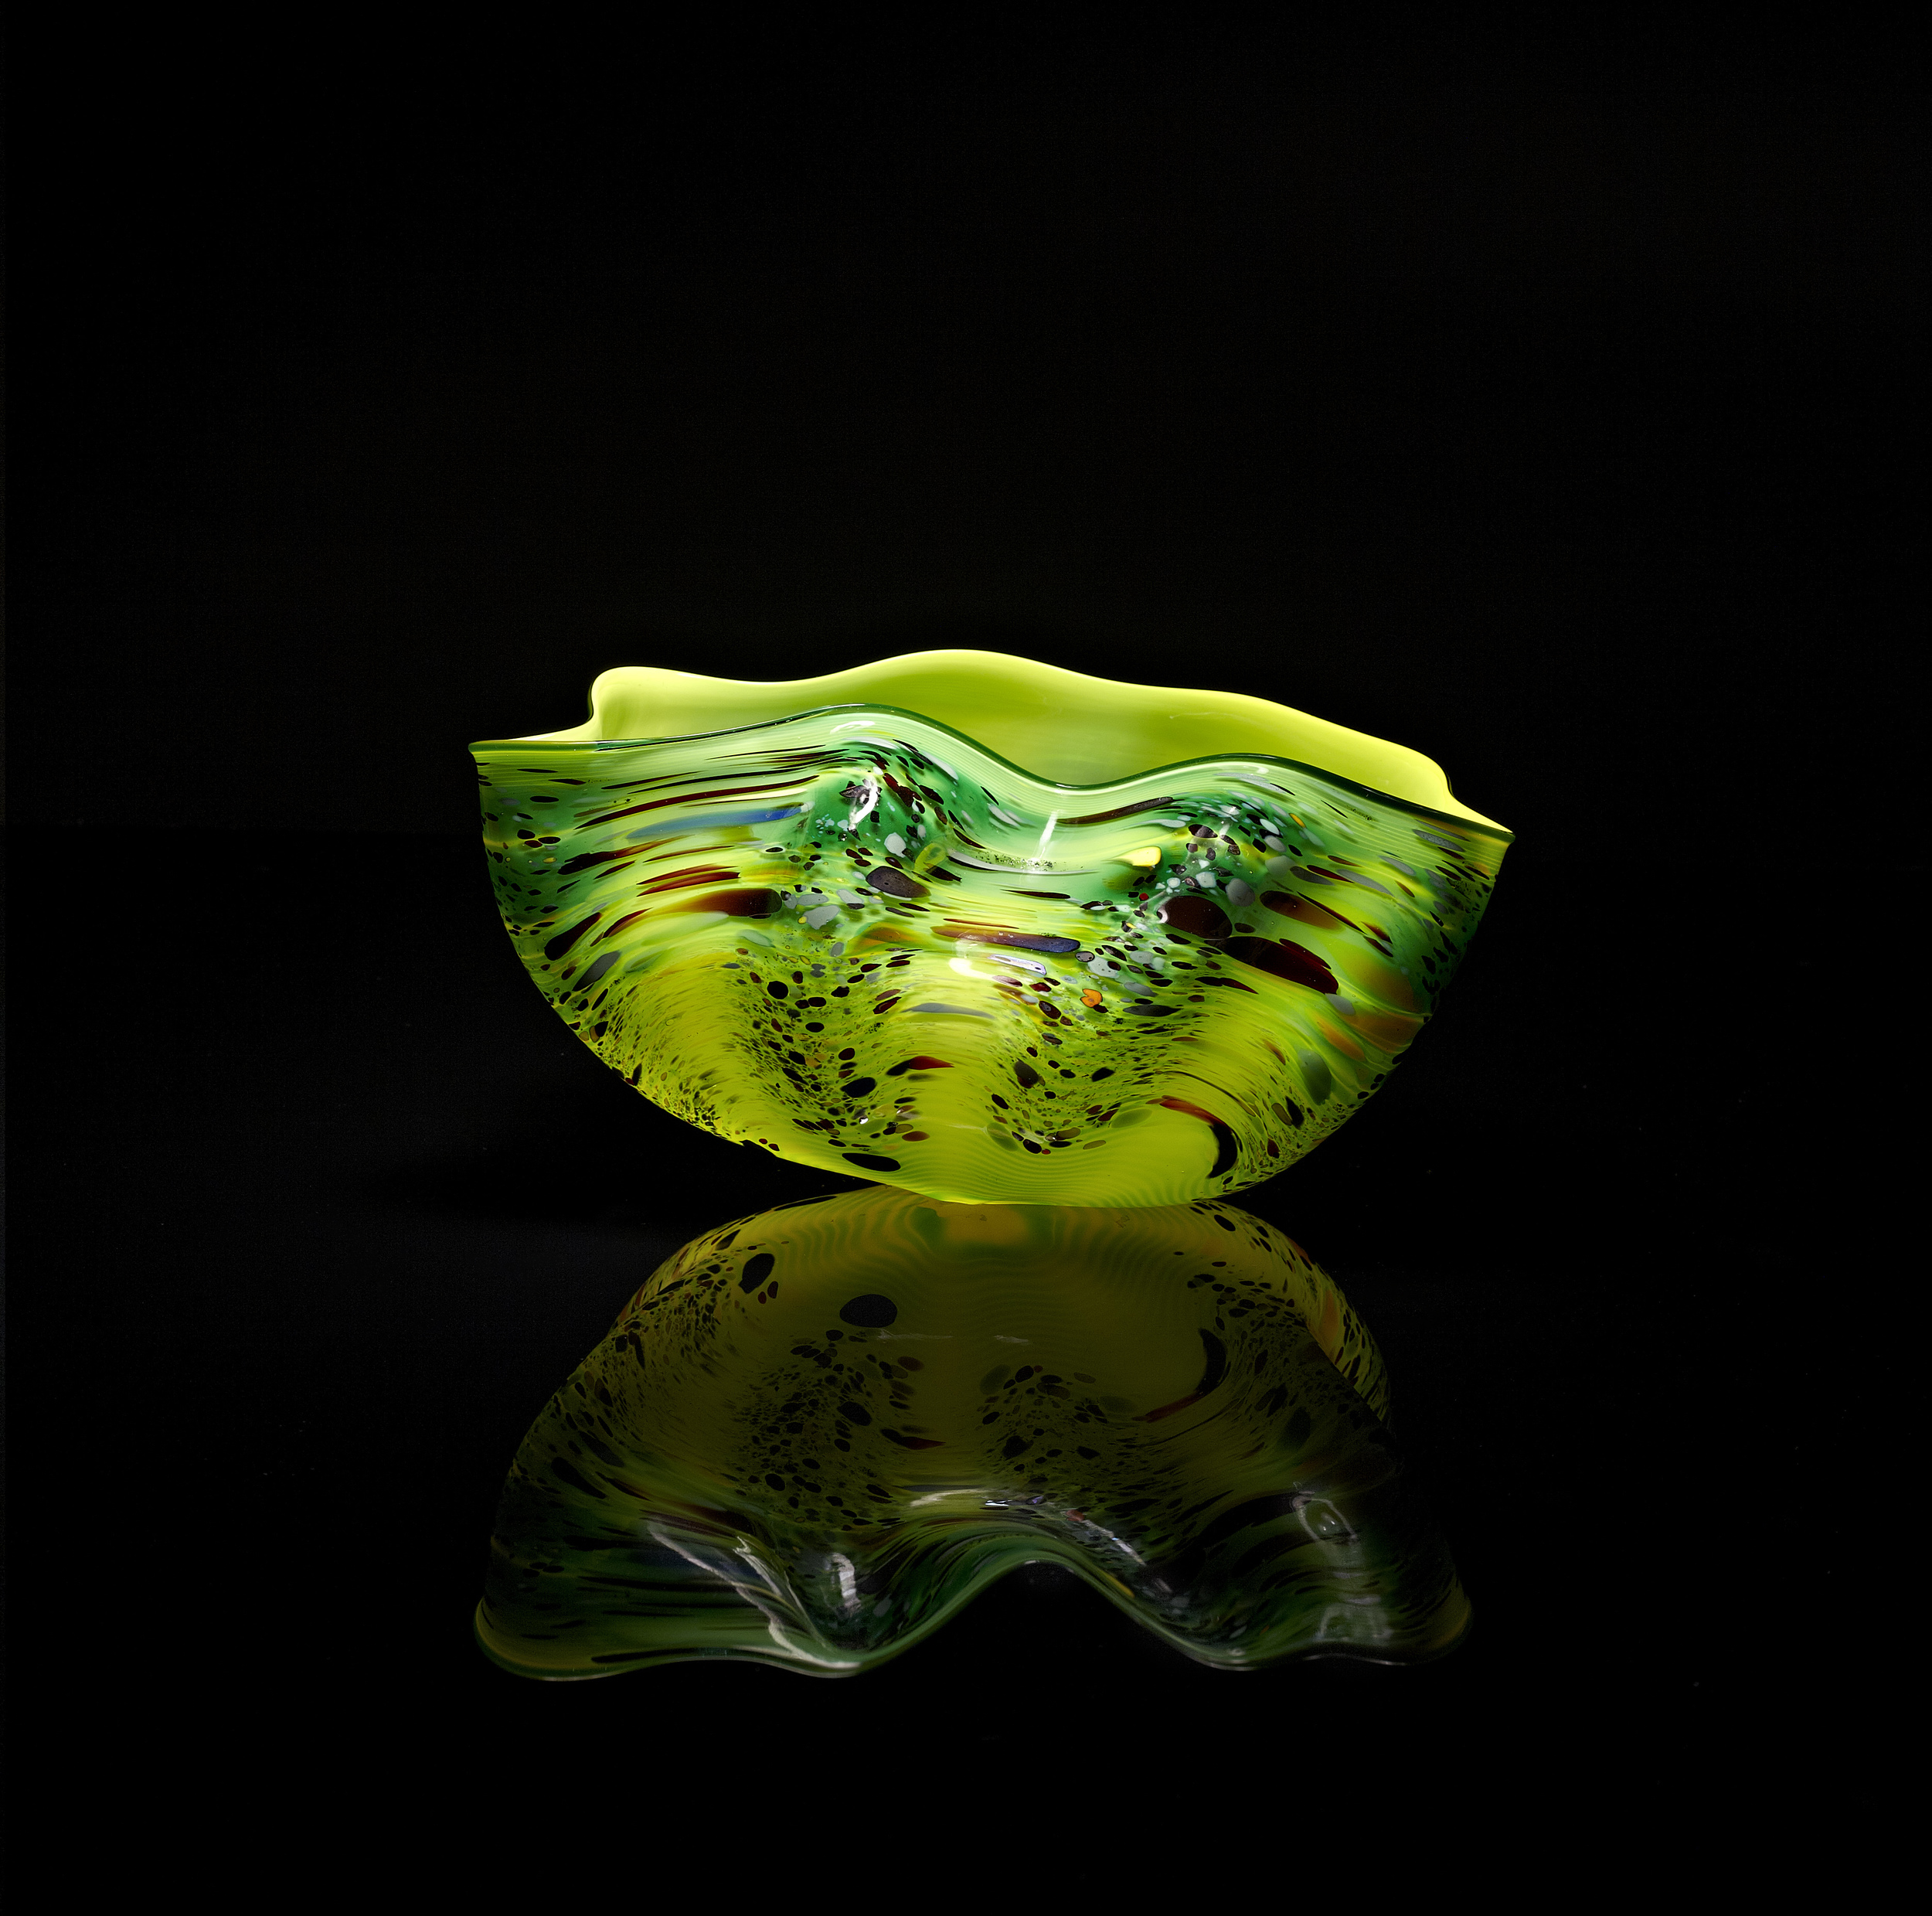 Dale Chihuly, Yellow Green Macchia with Forest Lip Wrap (1982, glass, 10 x 6 x 5 inches), DC.136